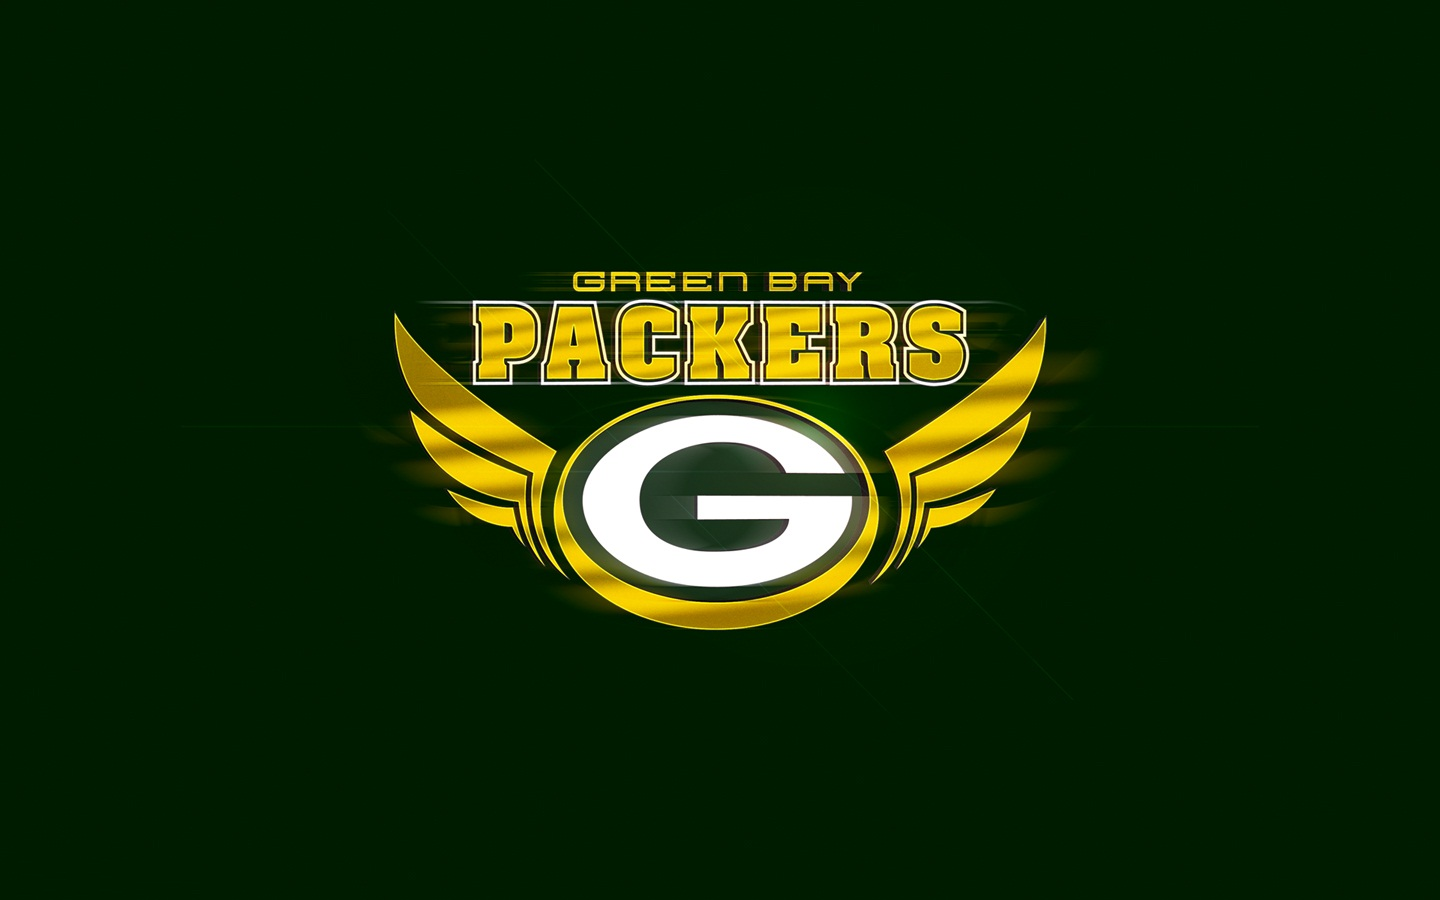 Green Bay Packers Nfl Football Review Ebooks 1440x900